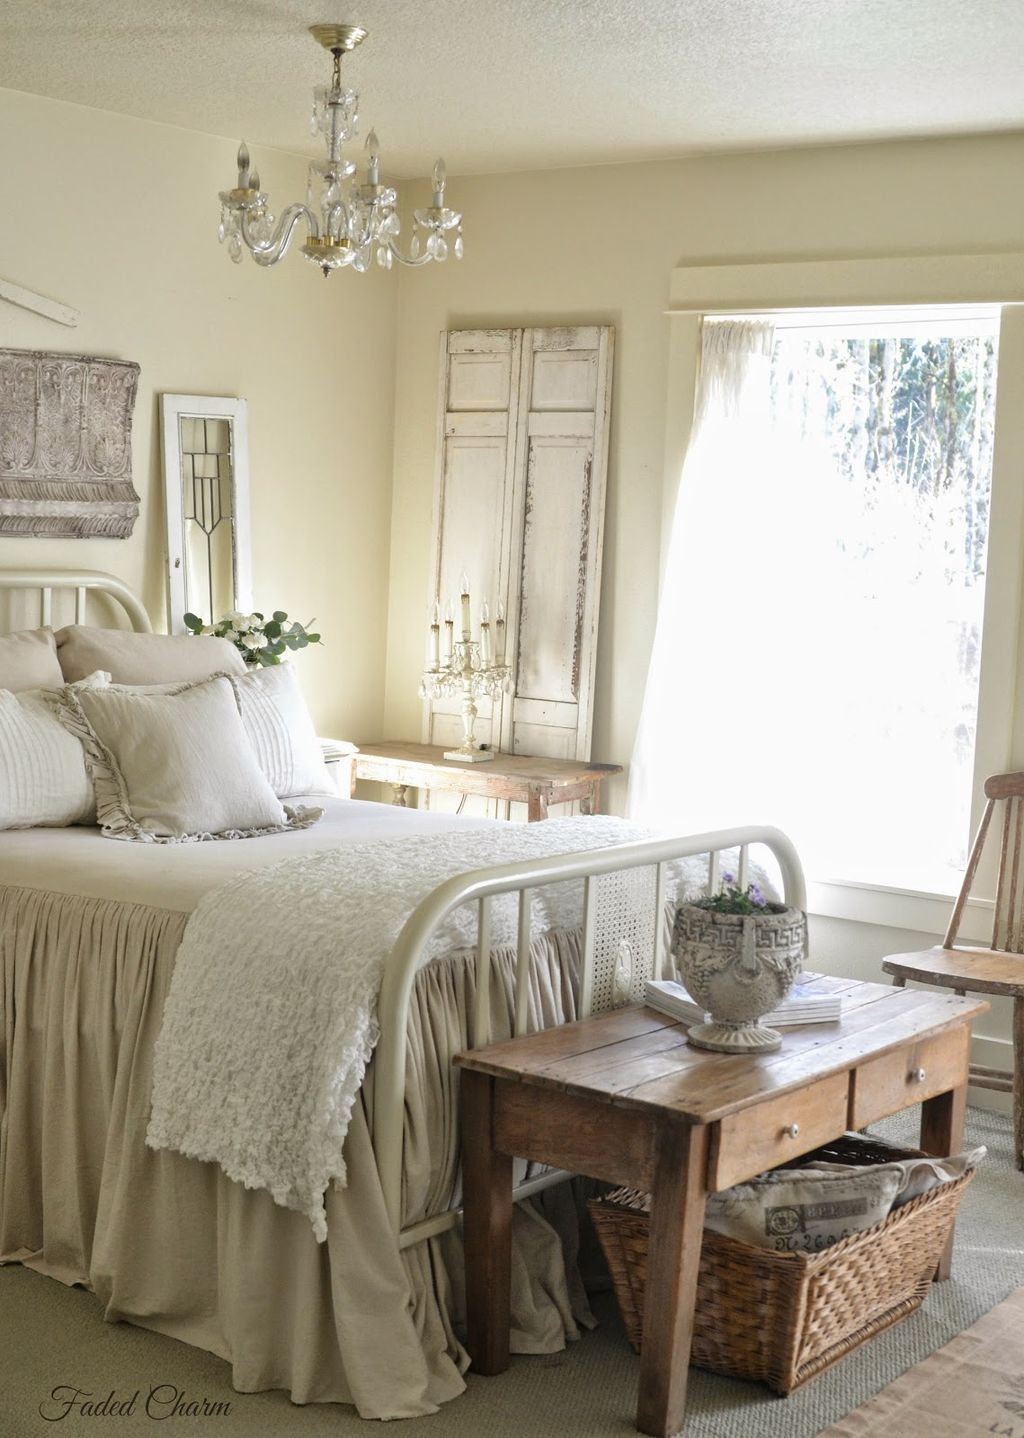 Cool 65 Classic and Vintage Farmhouse Bedroom